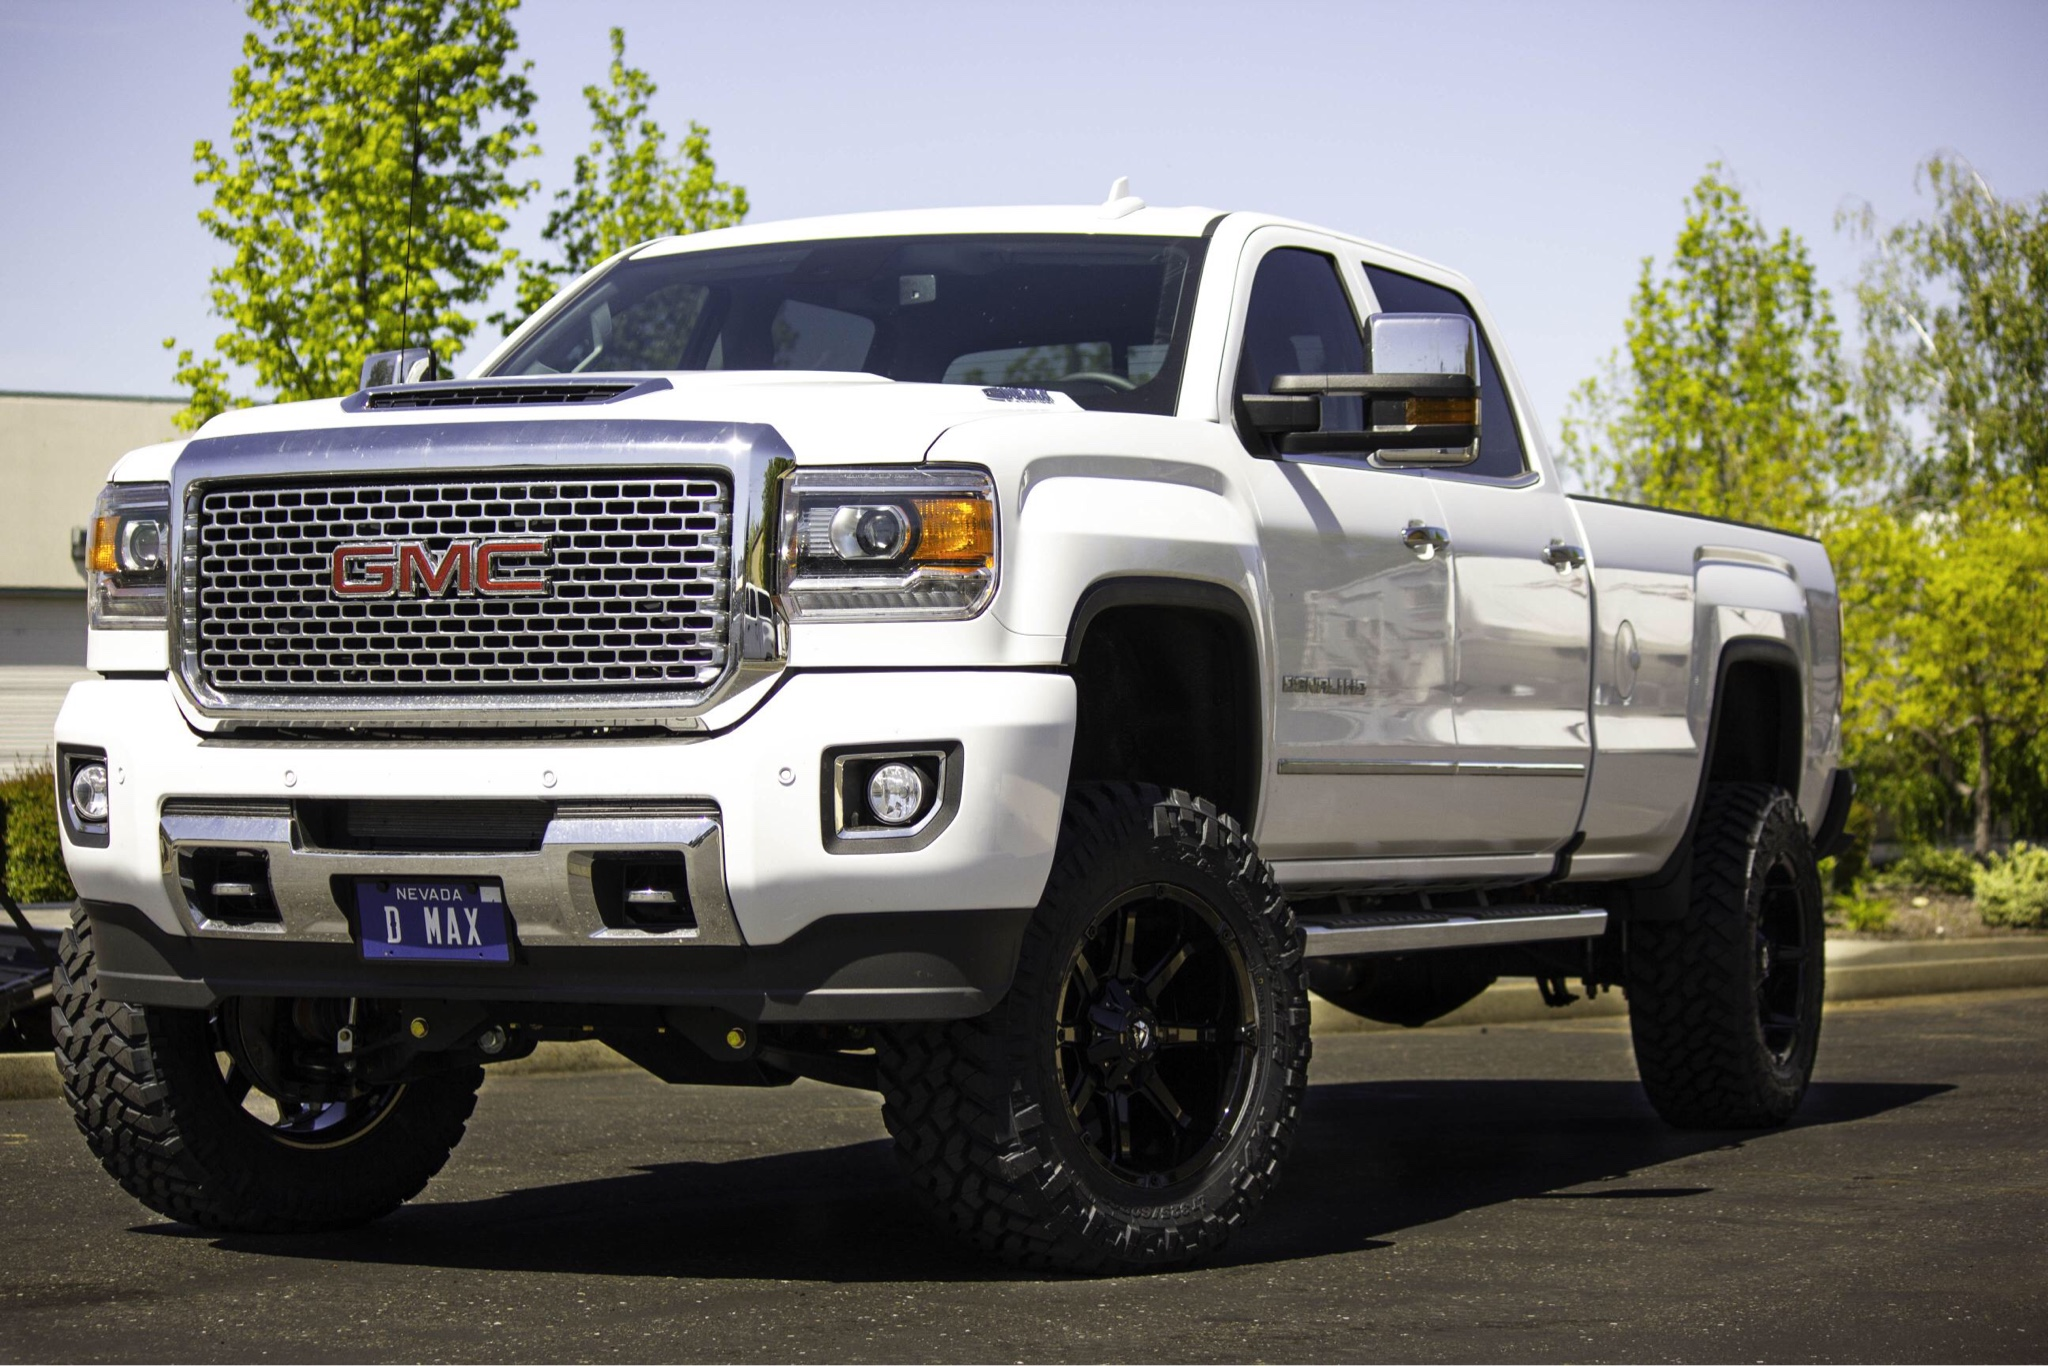 Chevy Reaper Price >> 2018 Gmc Duramax Specs - New Car Release Date and Review 2018 | mygirlfriendscloset